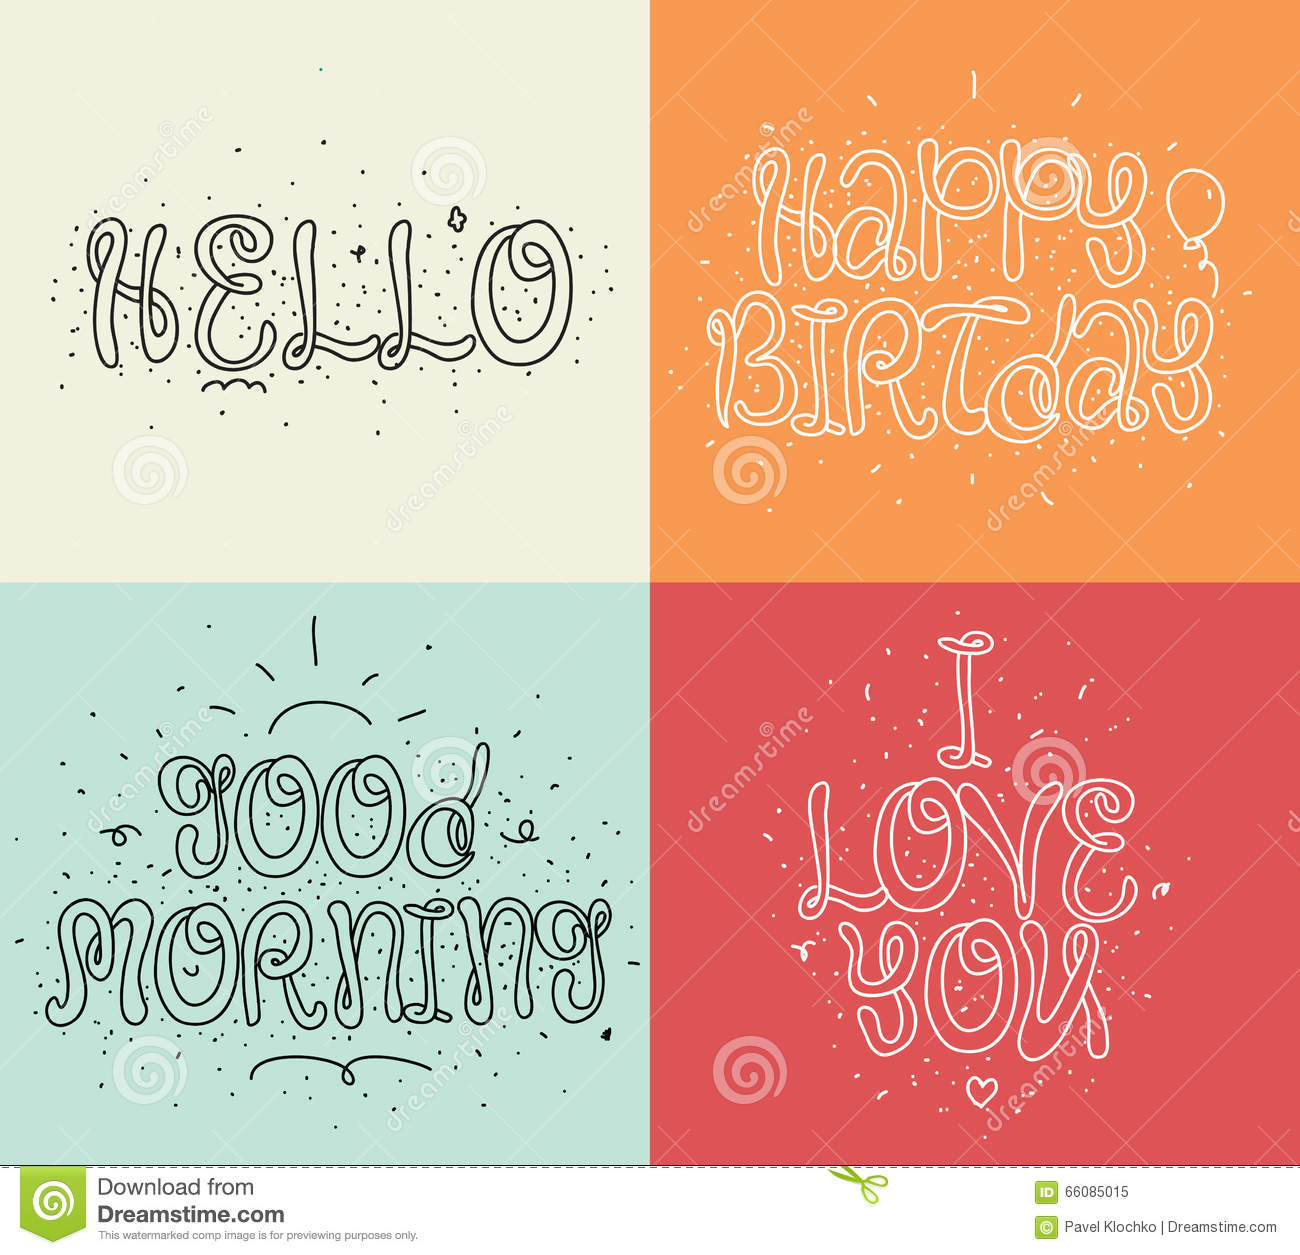 Hello Happy Birthday I Love You Good Morning Set Of Modern Calligraphy And Hand Drawn Elements Typographical Stock Vector Illustration Of Retro Expression 66085015